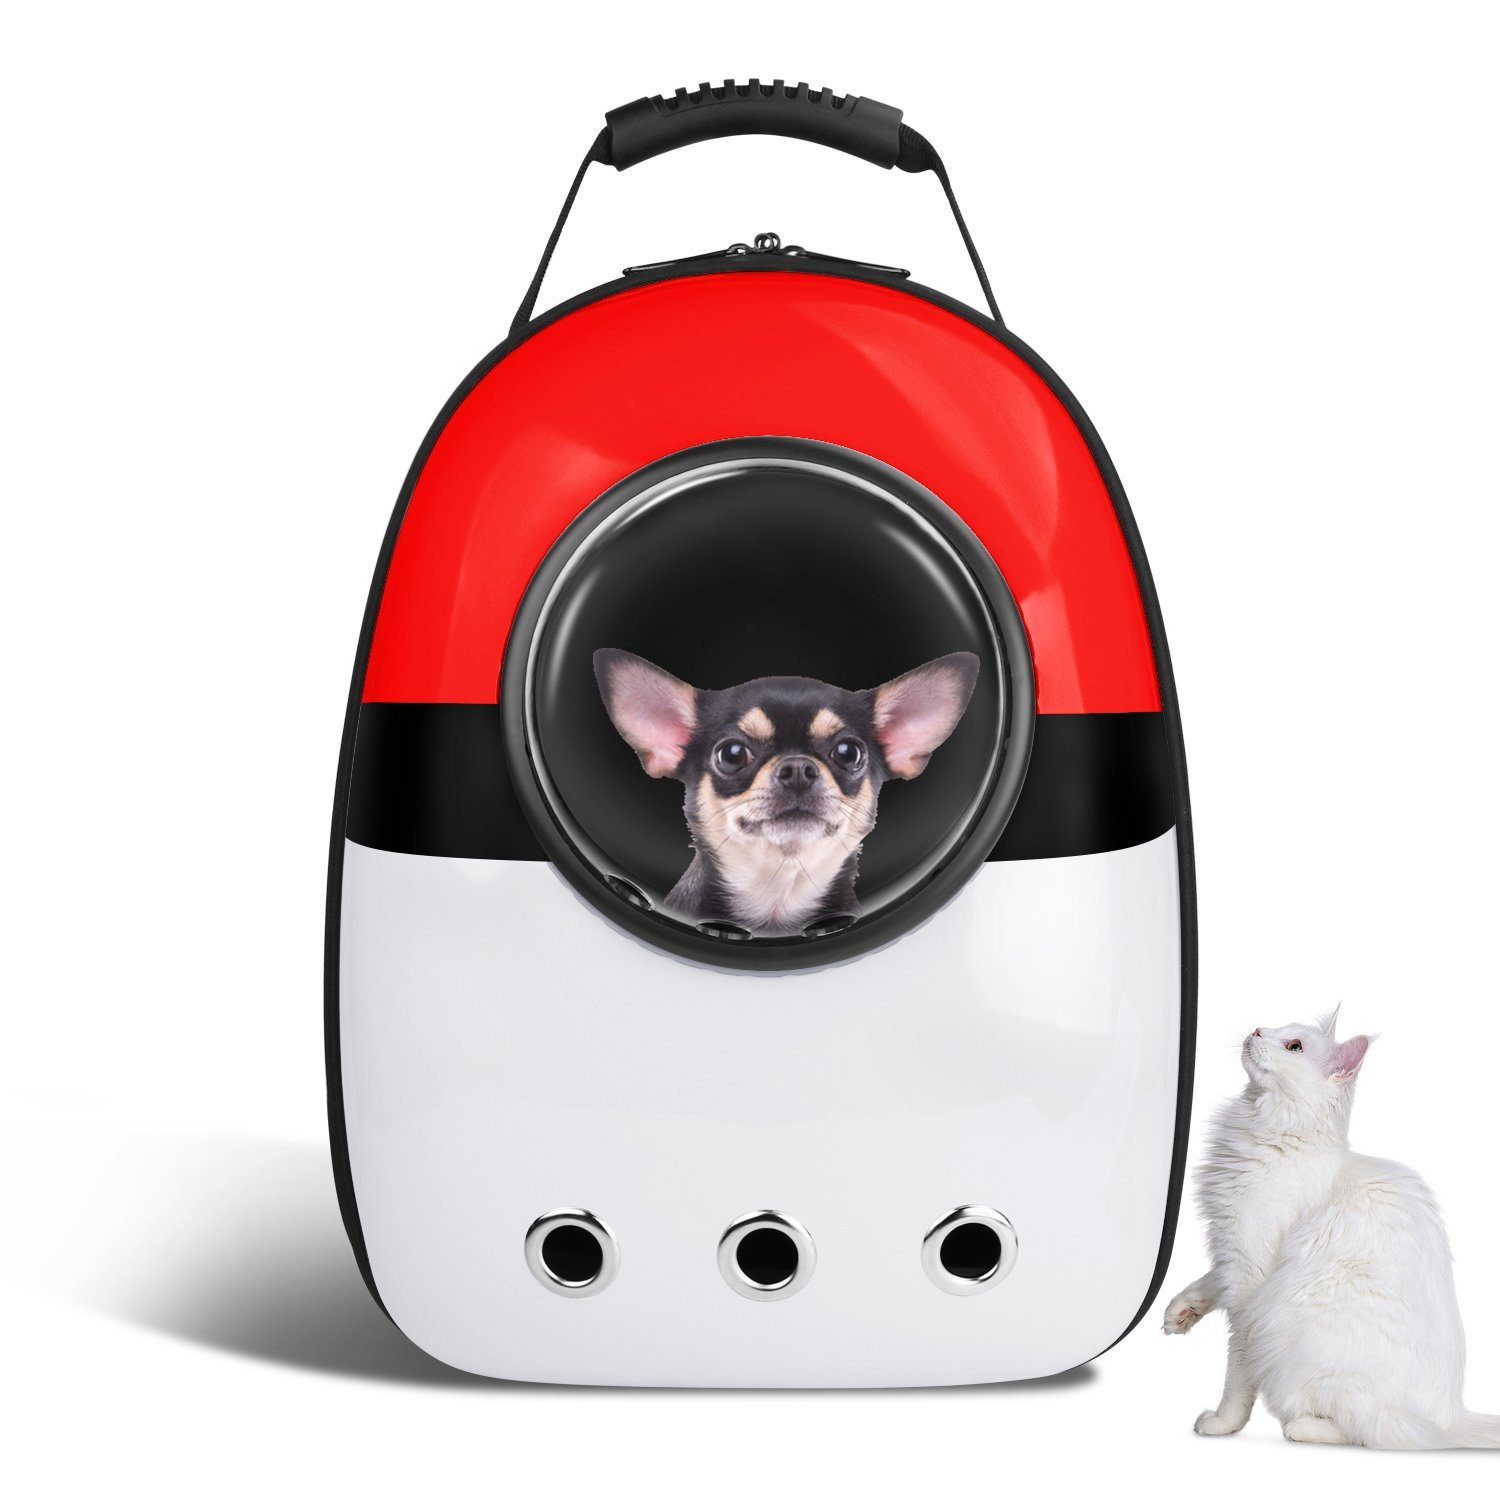 VOUMEY Portable Pet Travel Carrier Backpack for Cats/Small Medium Dogs/Pets Larger Space Capsule Breathable (Red)